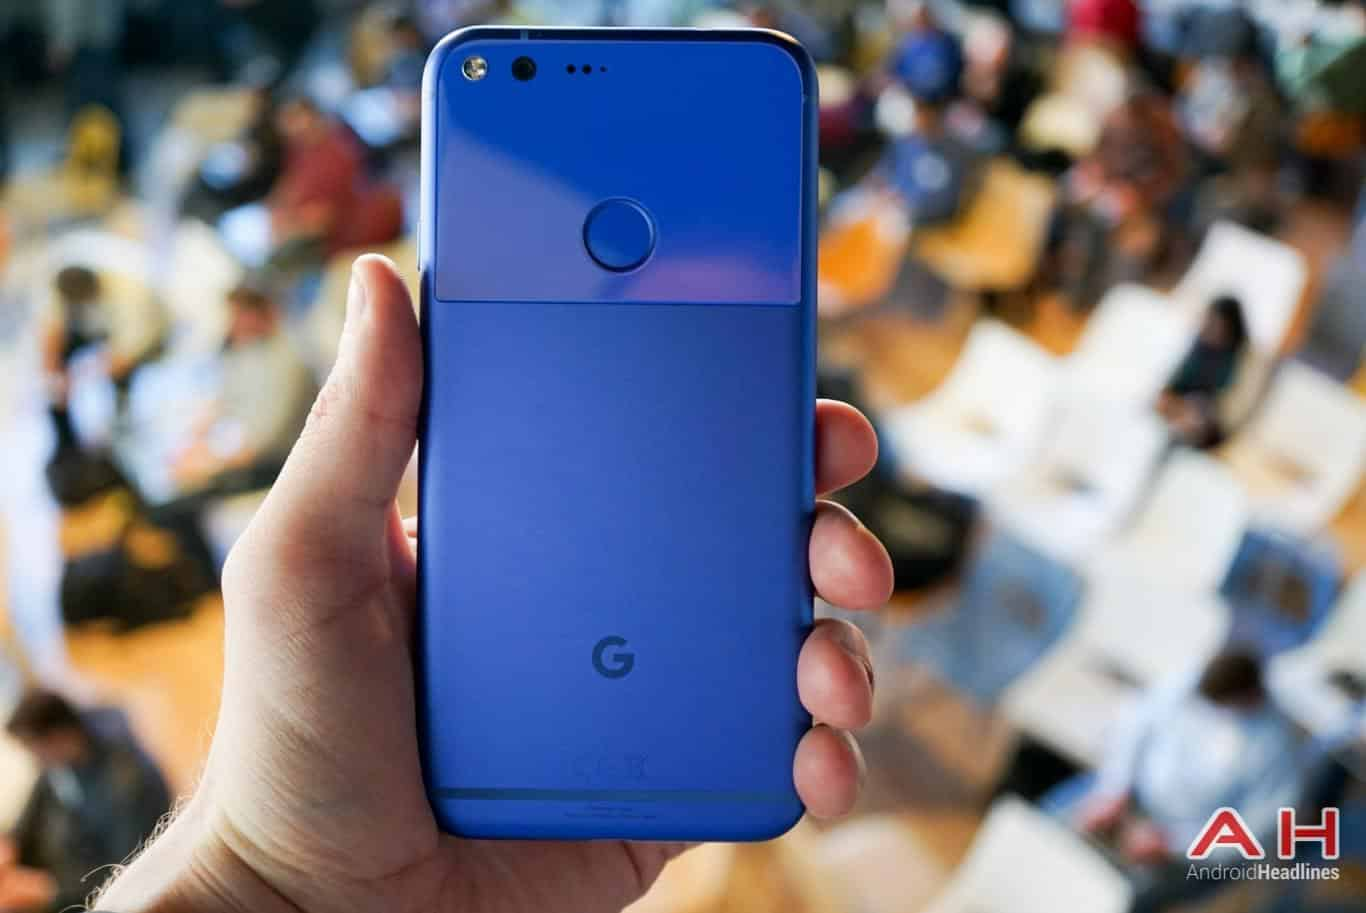 google-pixel-xl-hands-on-ah-23